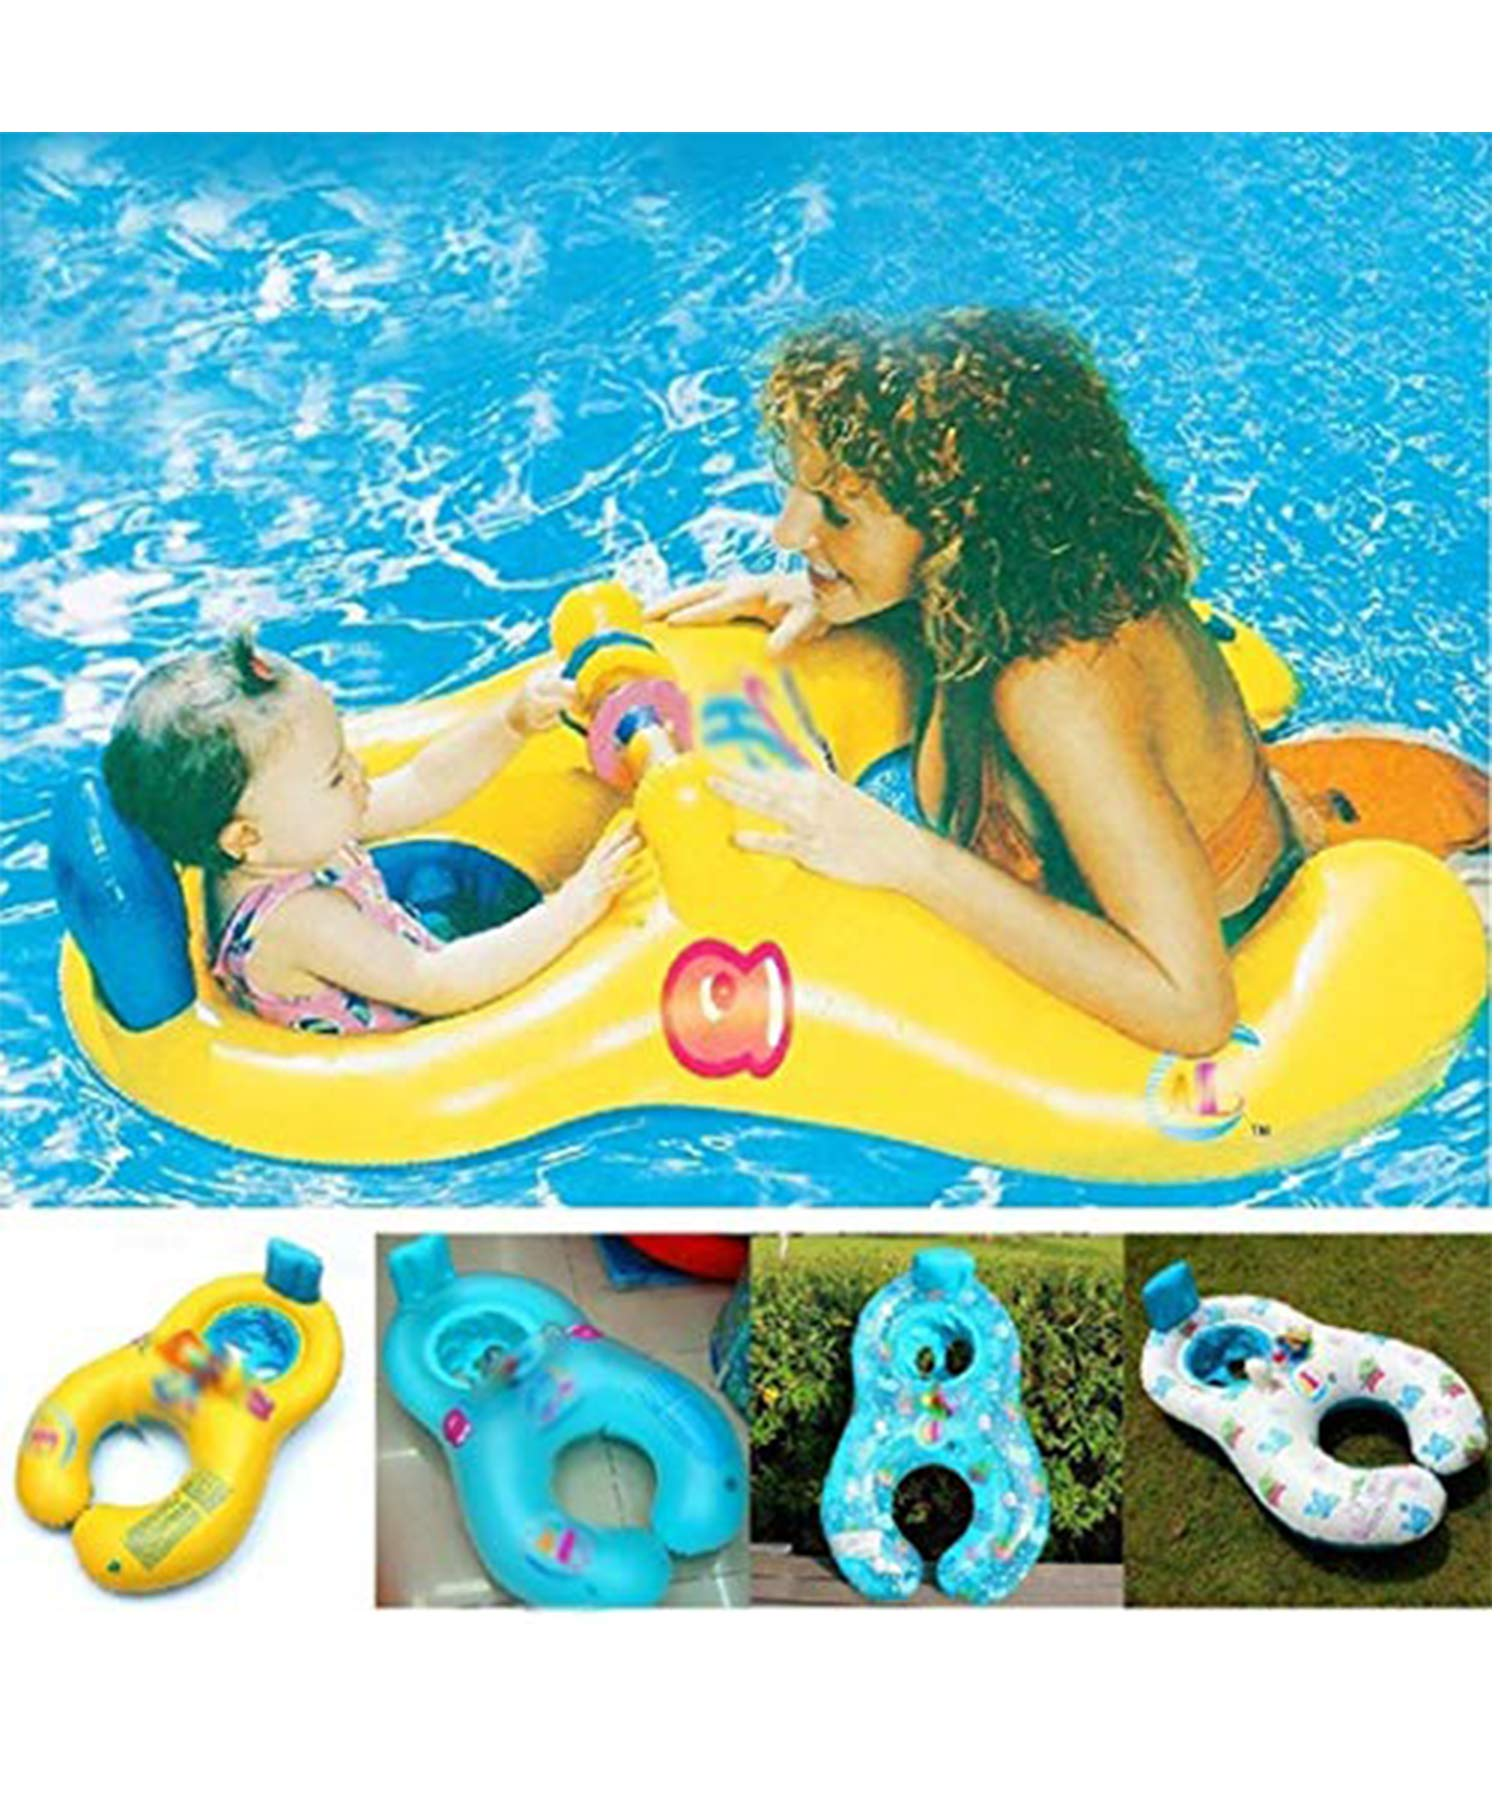 Yirind Mother and Baby Inflatable Swimming Float,Double Person Swimming Ring Toy for Kids (1-3 Years) by Yirind